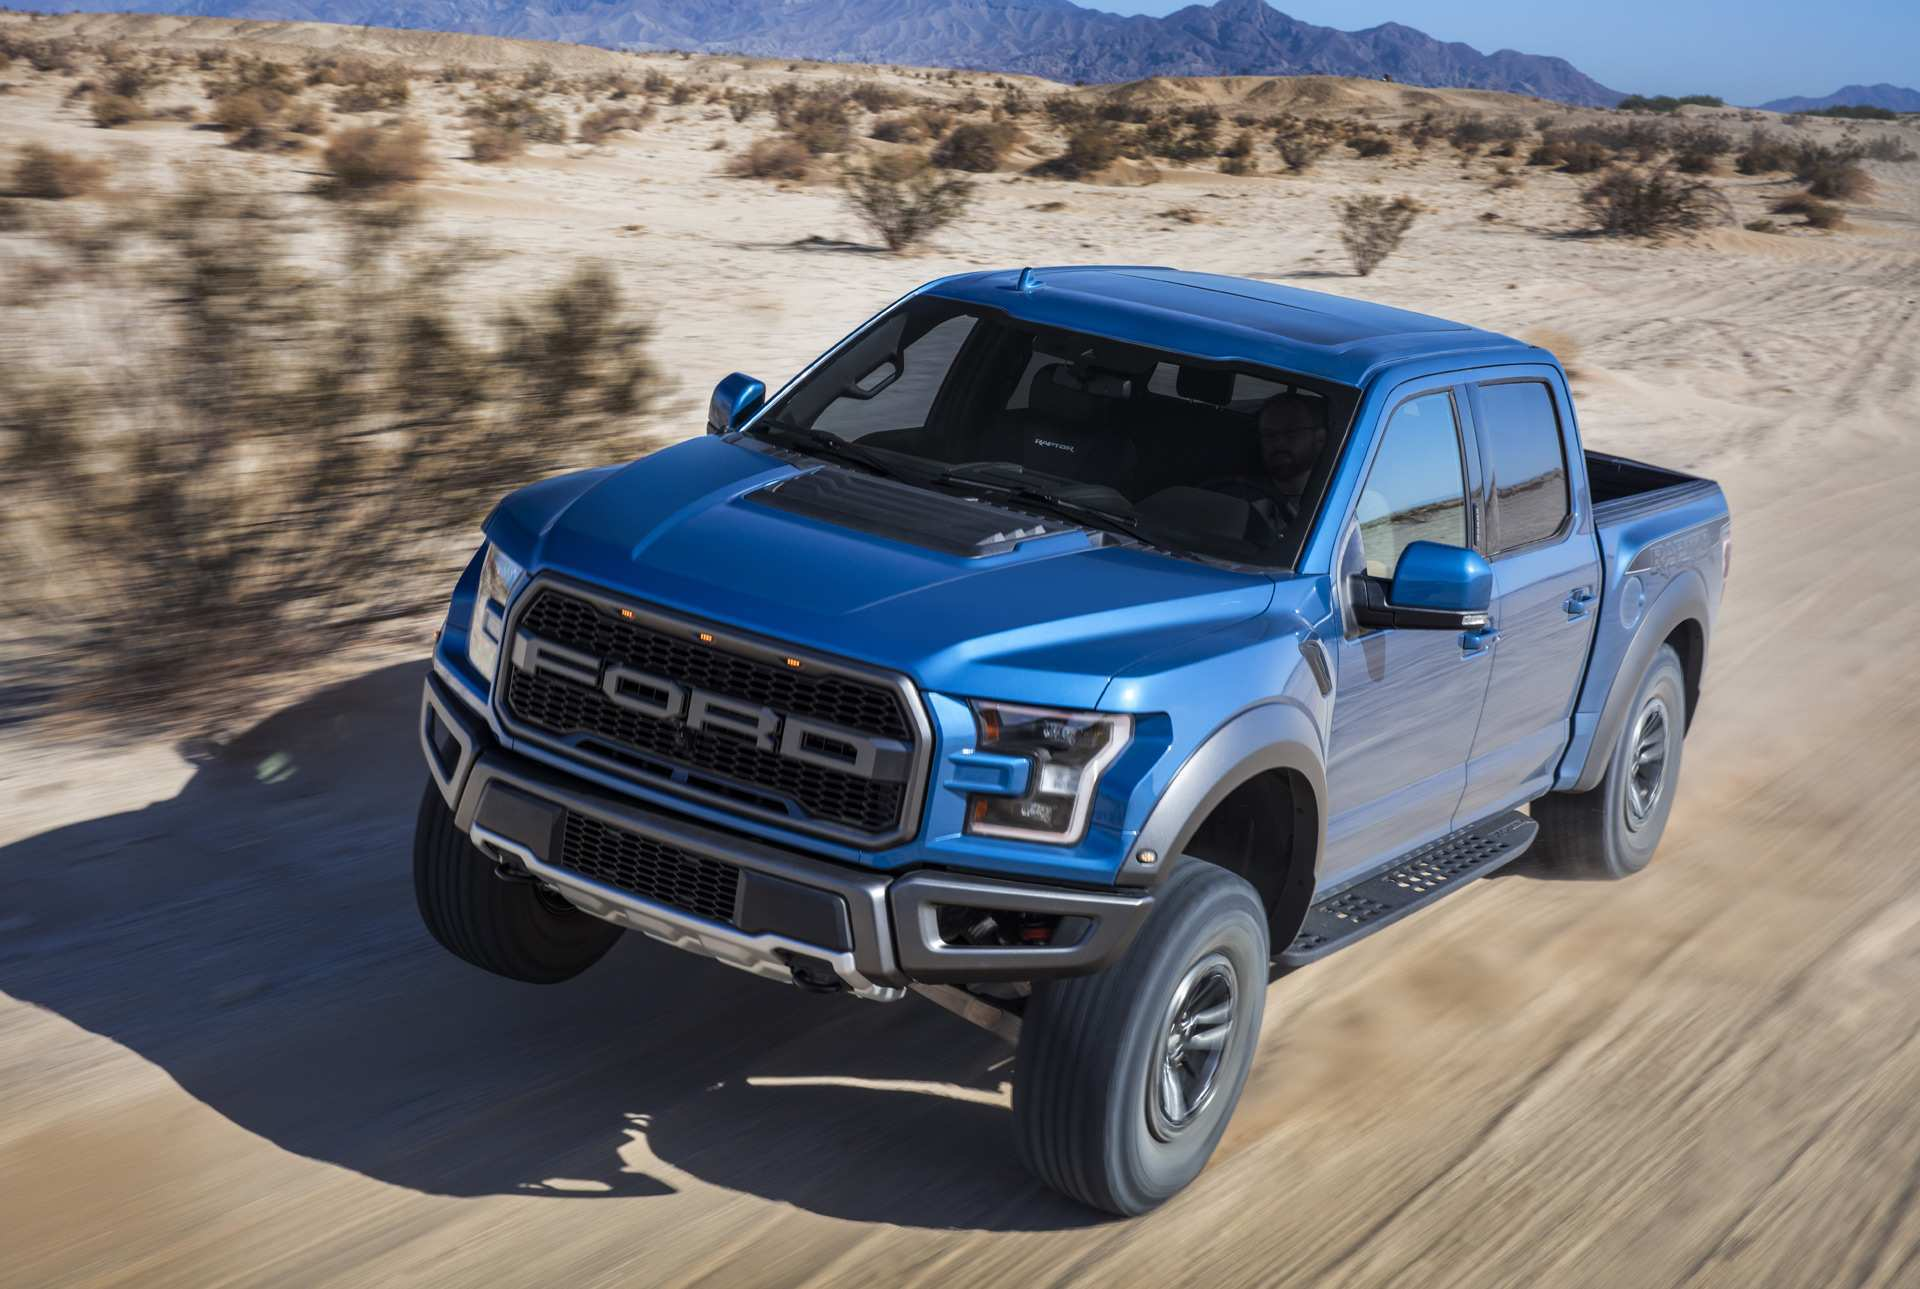 26 New 2020 All Ford F150 Raptor Concept